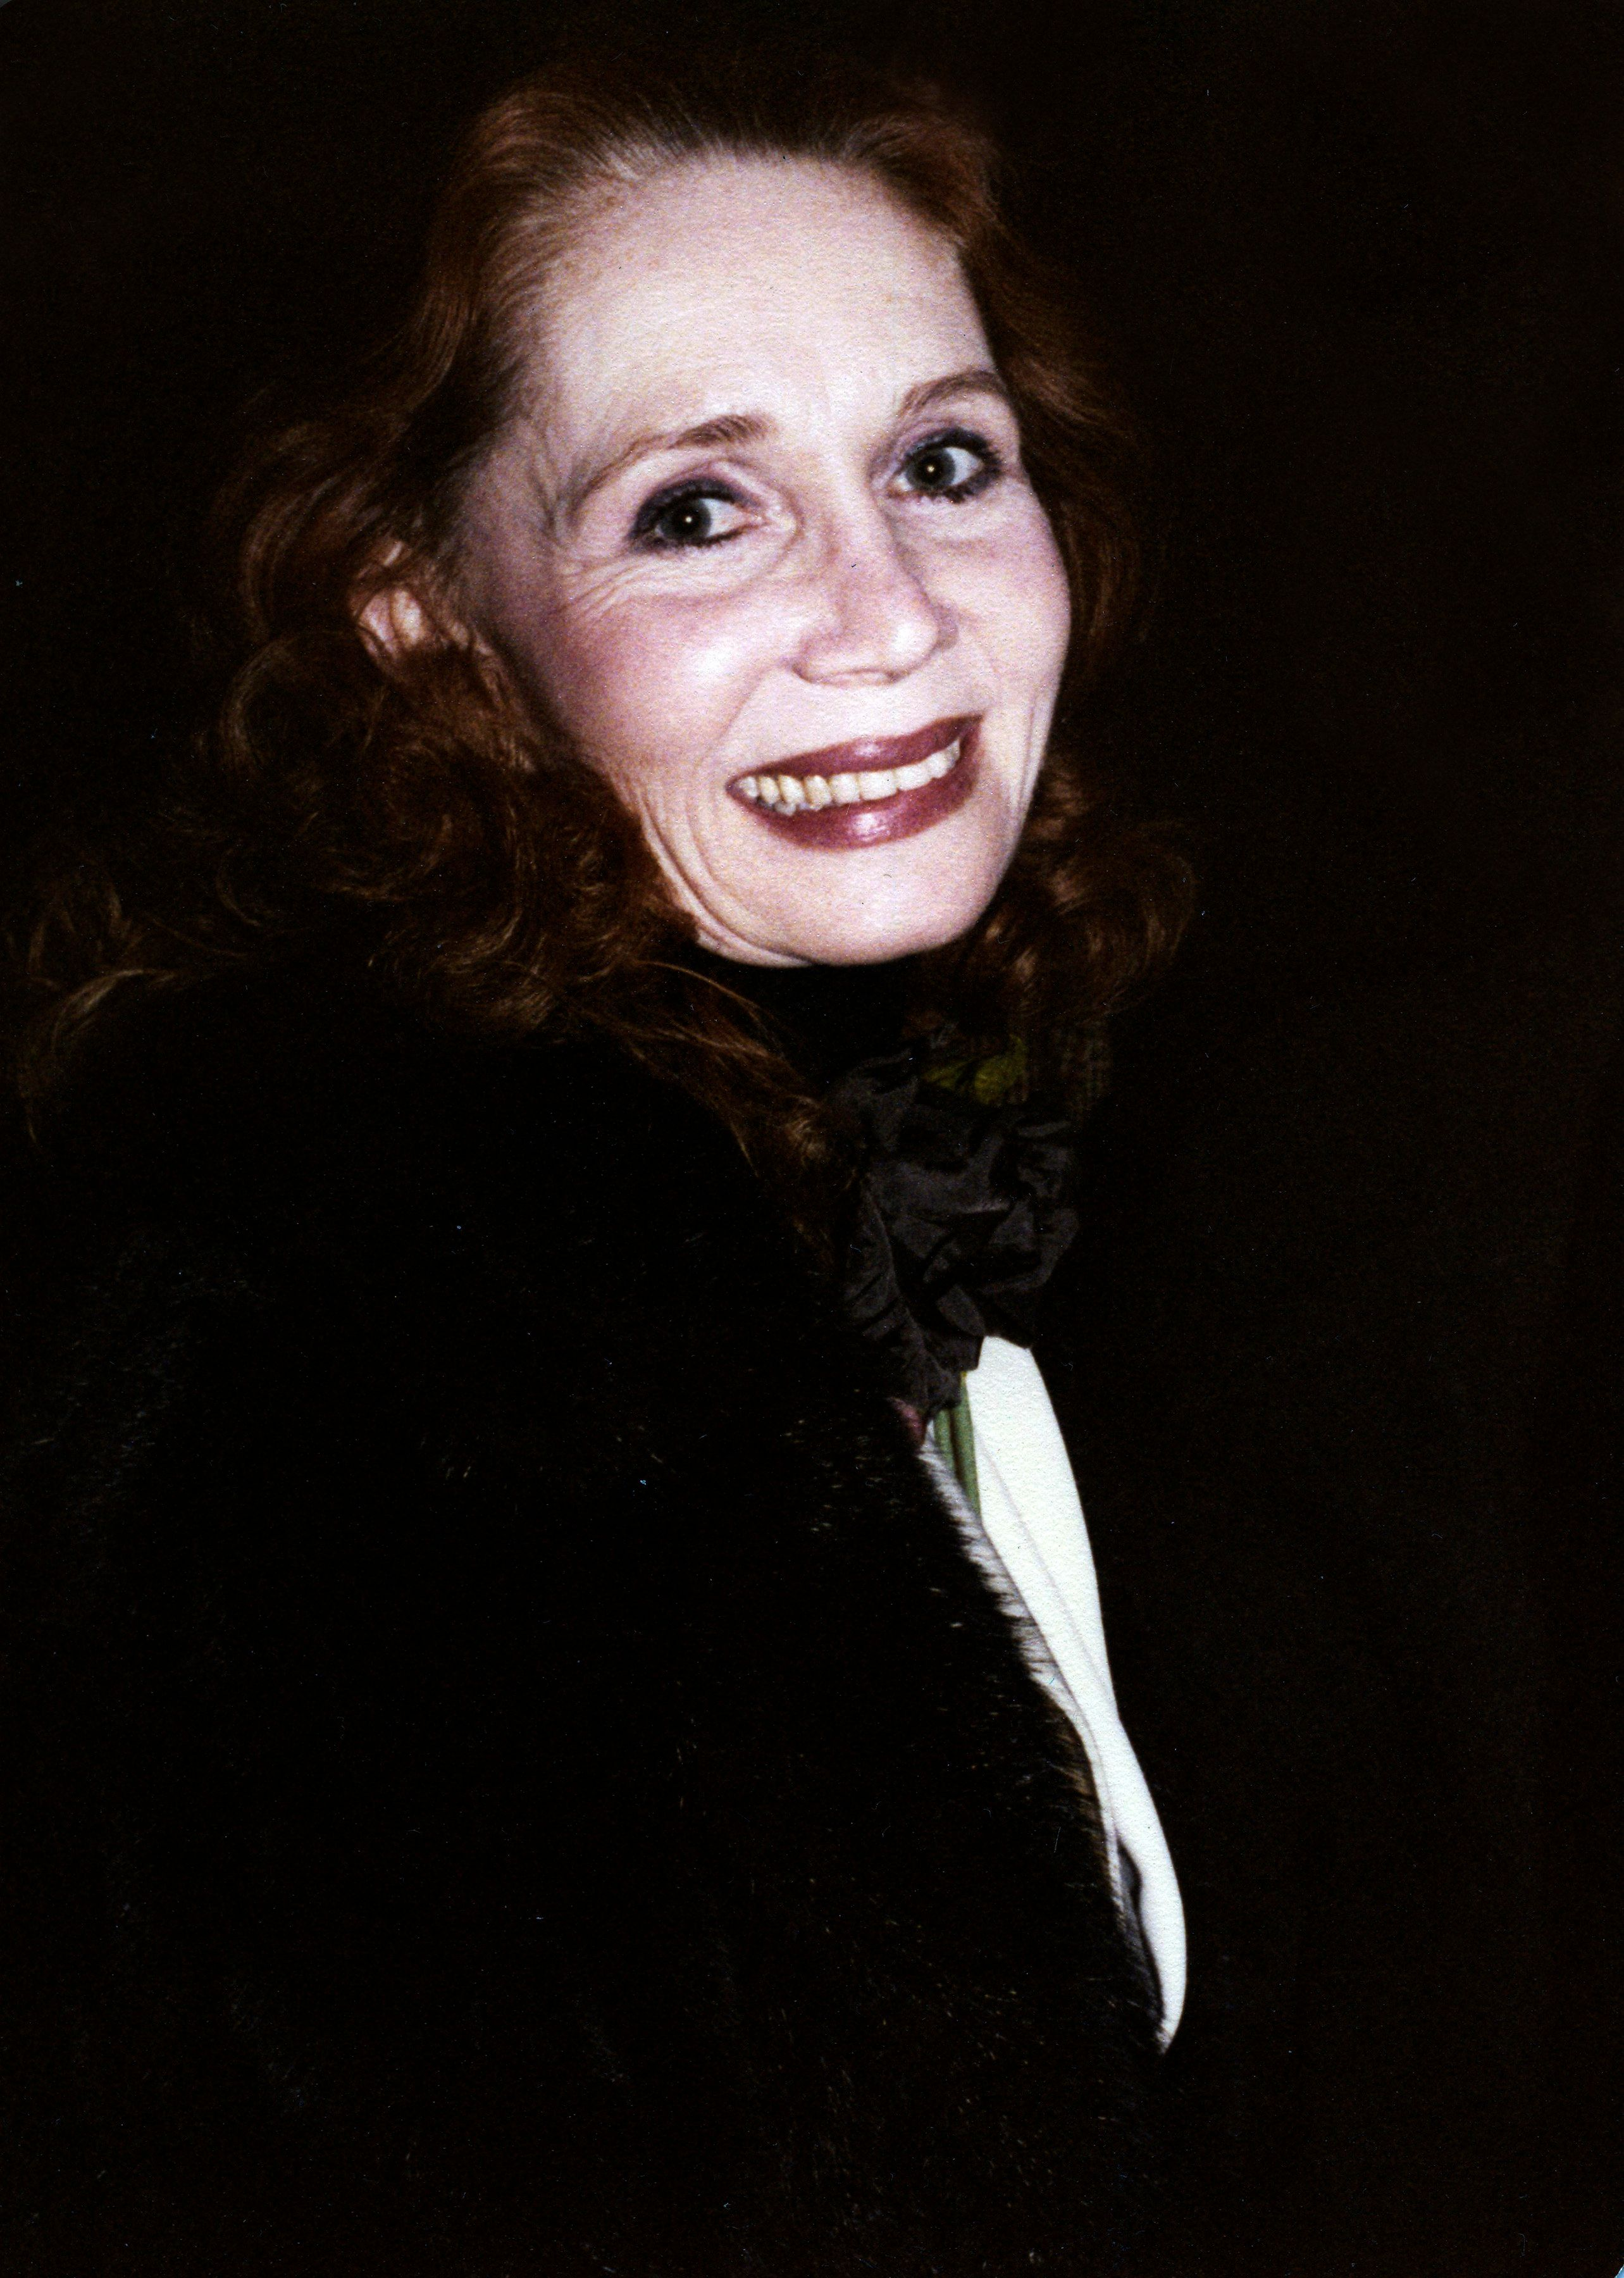 ***FILE PHOTO*** Actress Katherine Helmond Has Passed Away At 89. Katherine Helmond attends a Broadway Show on October 14, 1979 in New York City. Credit: Walter McBride/MediaPunch /IPX